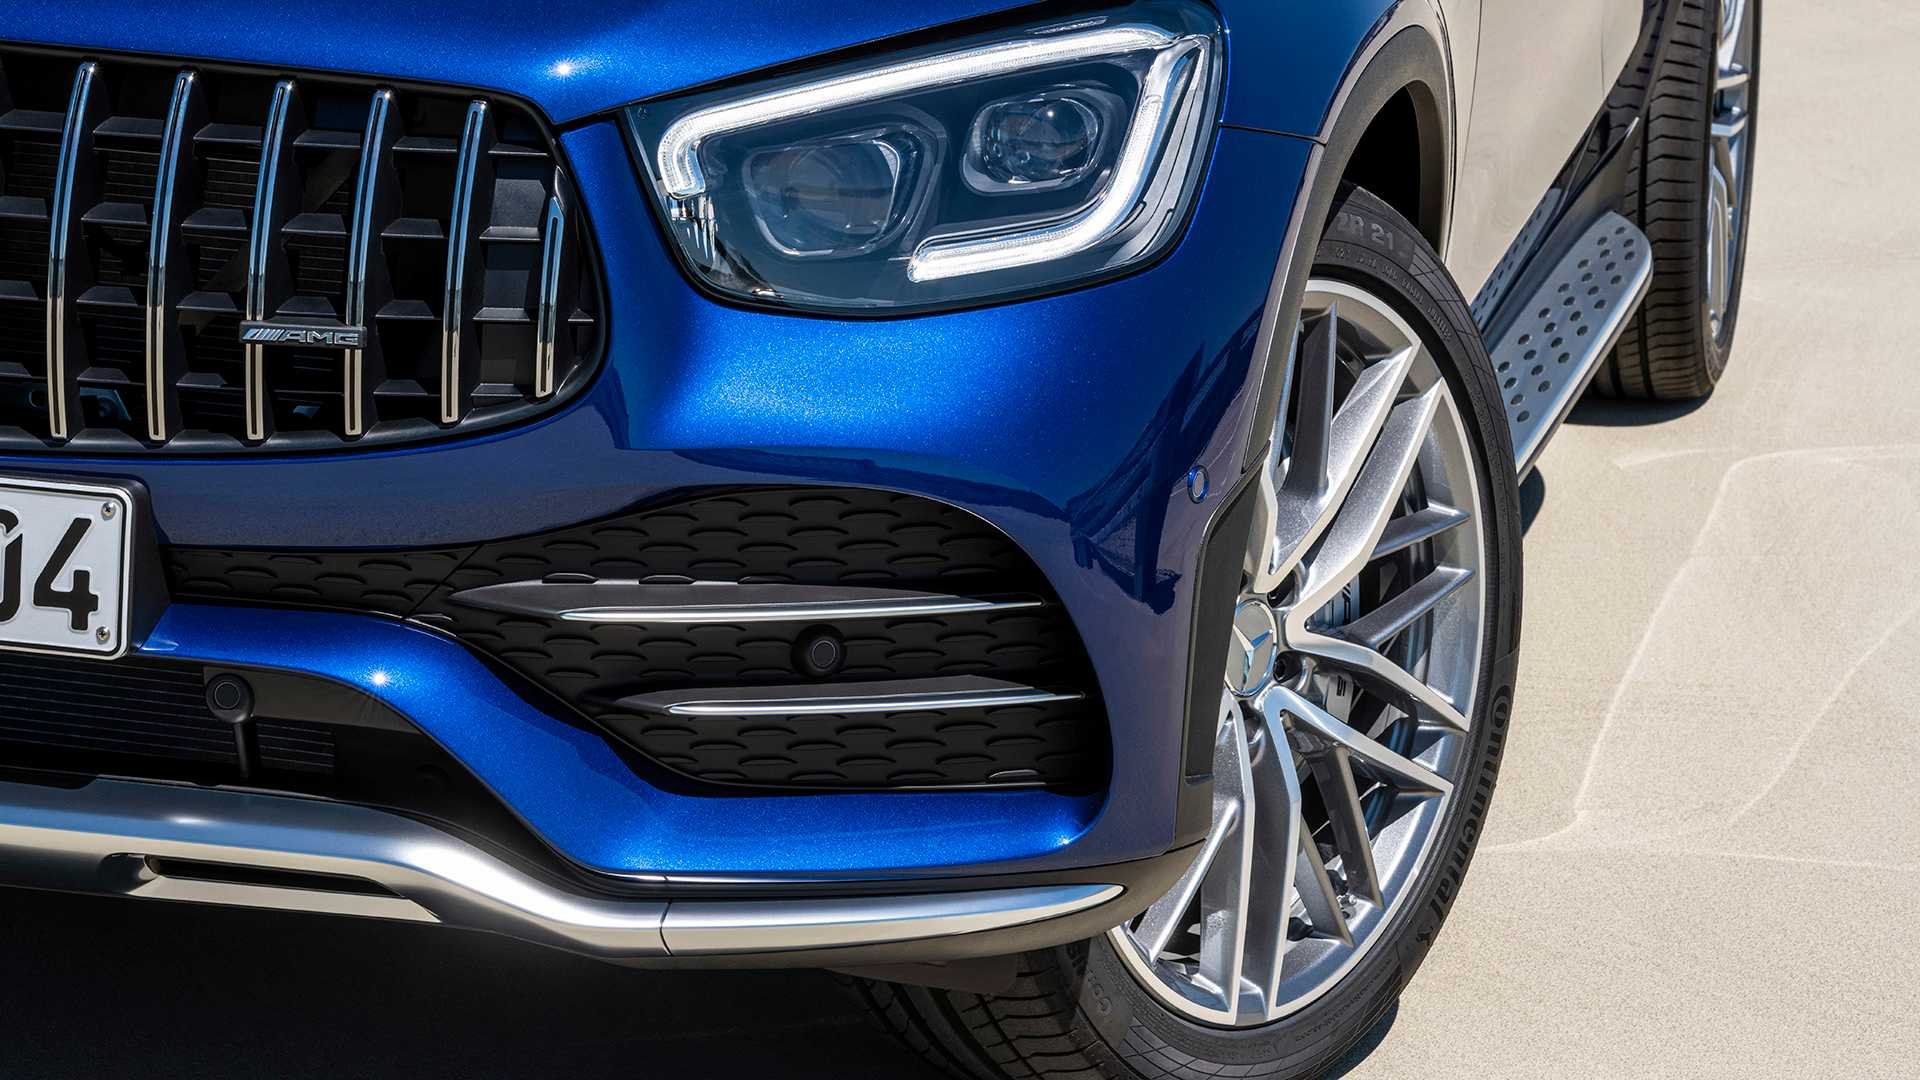 2020 Mercedes-AMG GLC 43 4MATIC Grill Wallpapers (13)